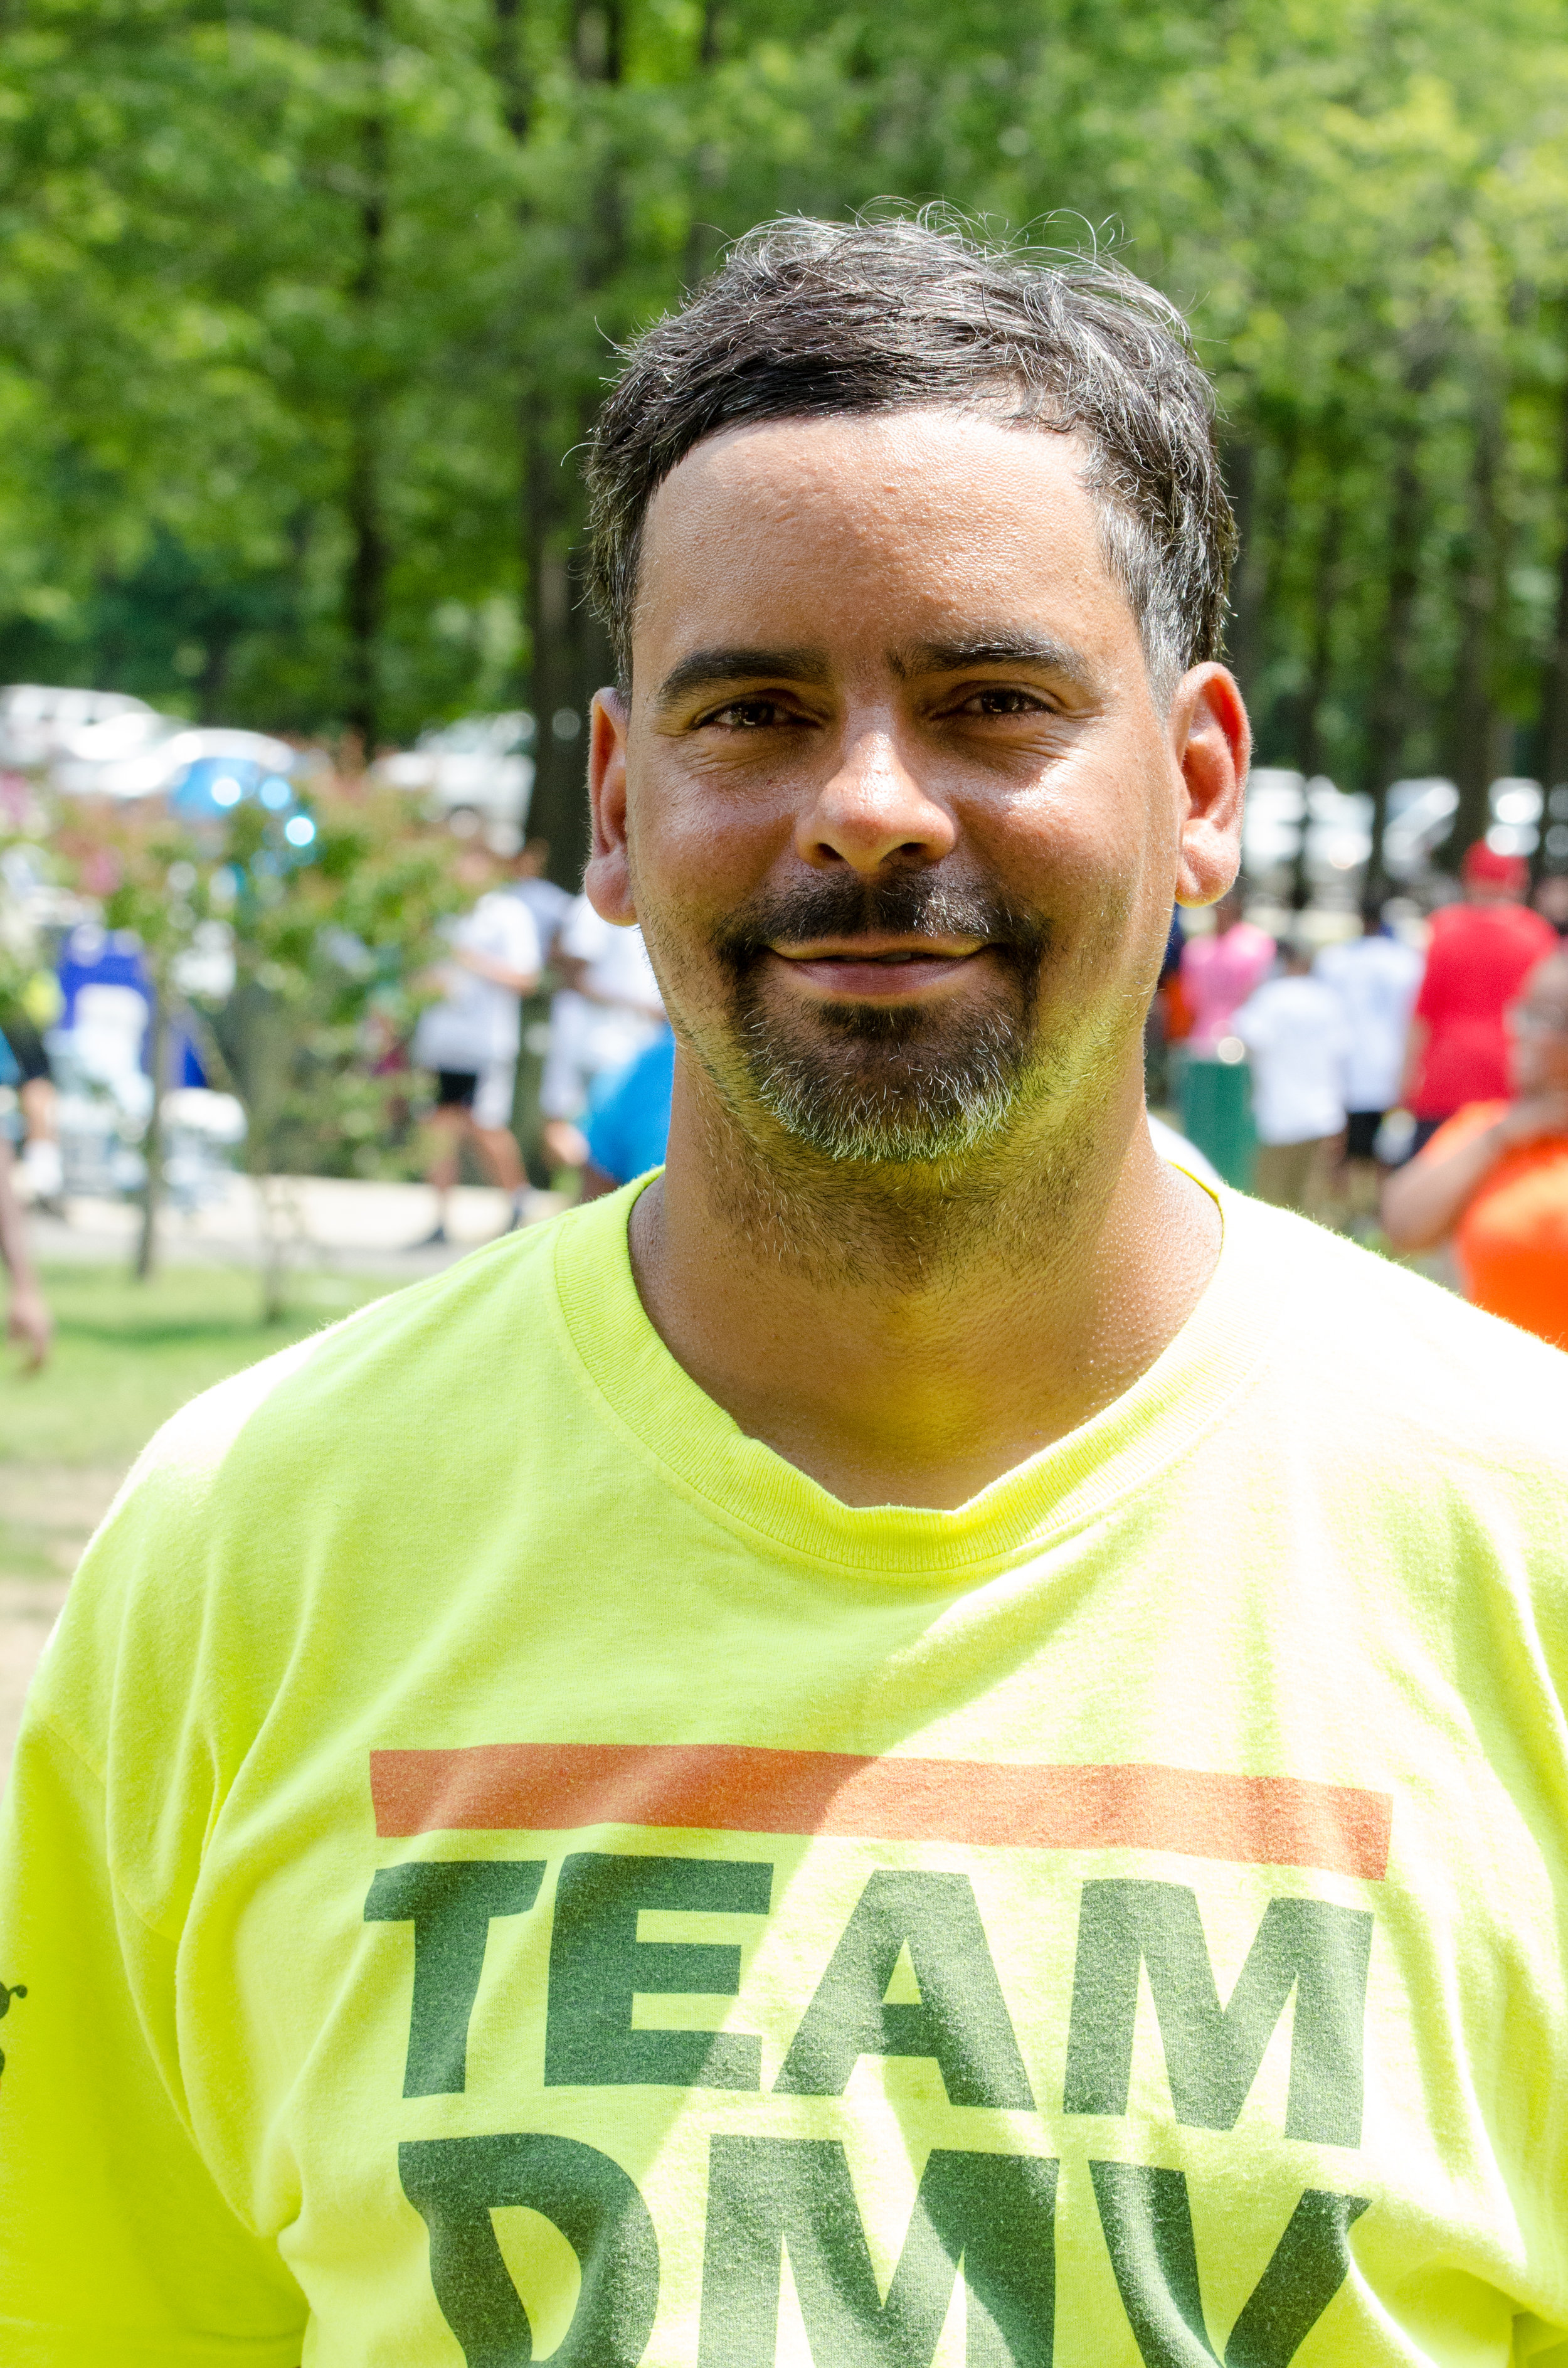 COACH MALCOLM - Malcolm Greene is a USTA Certified High Performance Tennis Coach, and a PTR & PTA Professional Certified Coach. He is currently the Head Coach for the Metropolitan Tennis and Education Group, a 4-Star Tennis Academy staff coach and the Head Coach at Saint Johns College High School. He played junior tennis and achieved a national ranking. He also played college tennis at North Carolina Central University where he was Team Captain and the #1 player. In 2014 Malcolm received the USTA Coach of the Year Award and the USTA MAS Tournament Director of the Year Award. As the JTT Coach for DC, he led the 2015, 14u Advanced JTT Team to a National Championship. Malcolm formerly taught elementary school for fifteen years, five of those years were spent in the DC public school system.